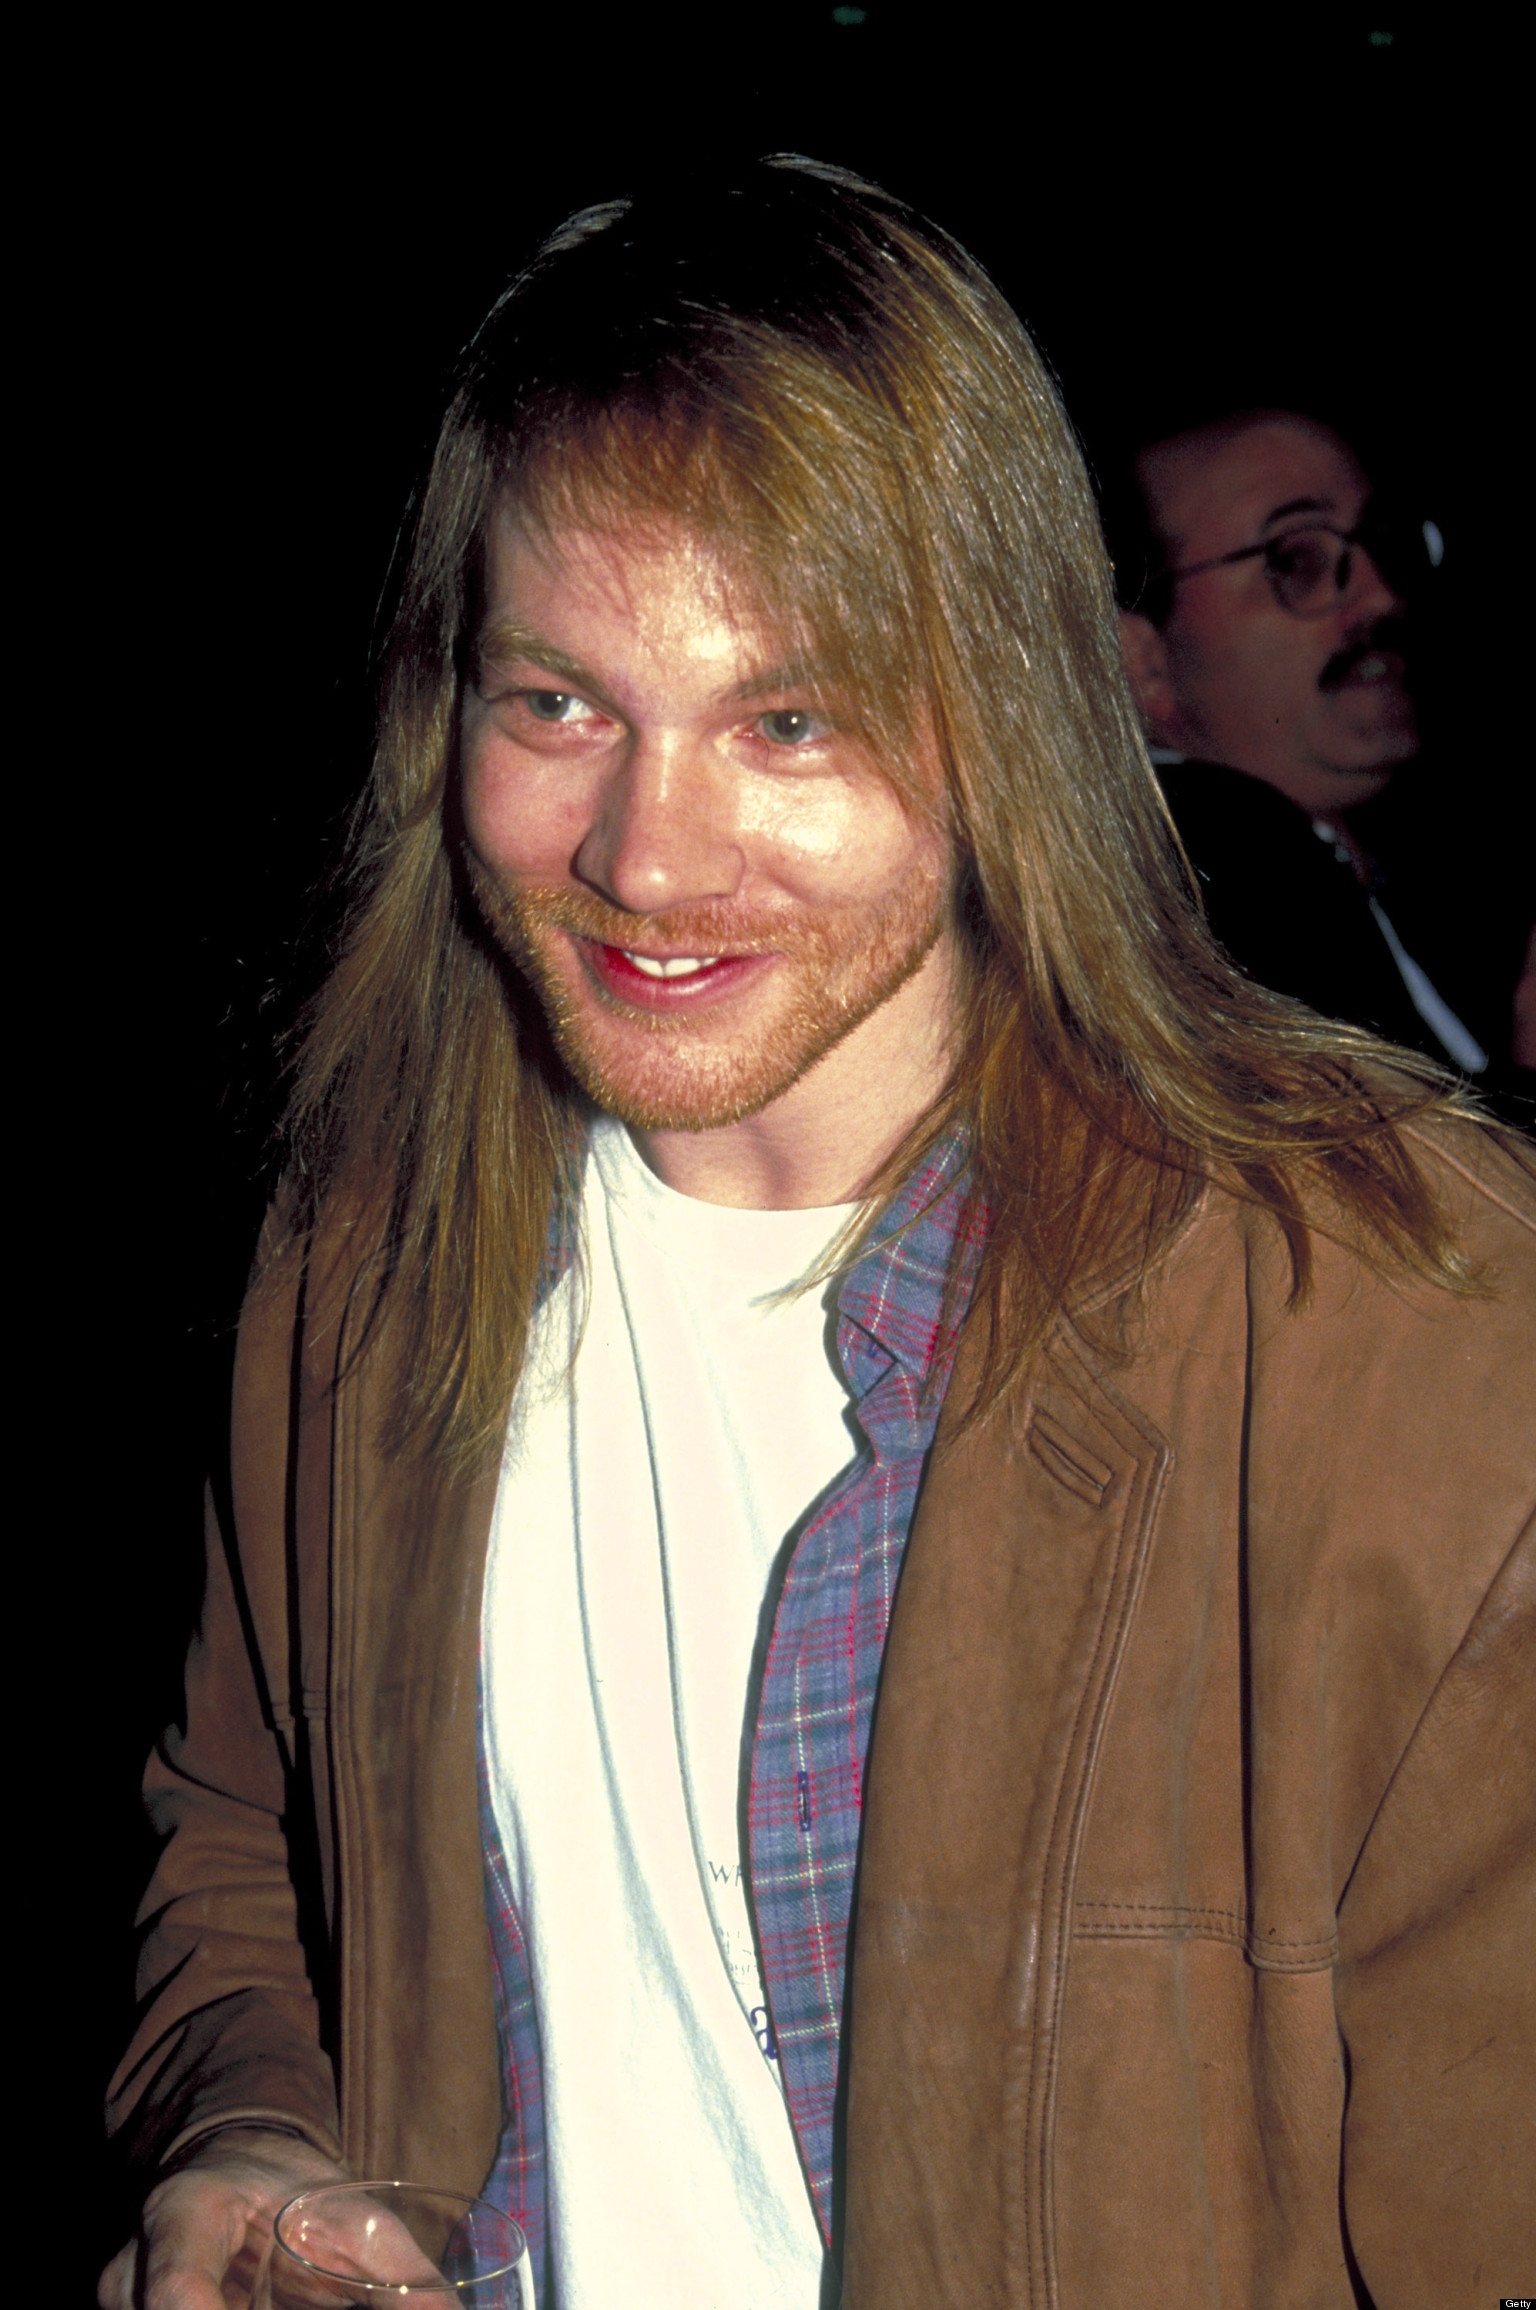 axl rose is unrecognizable at yard sale in nyc photos